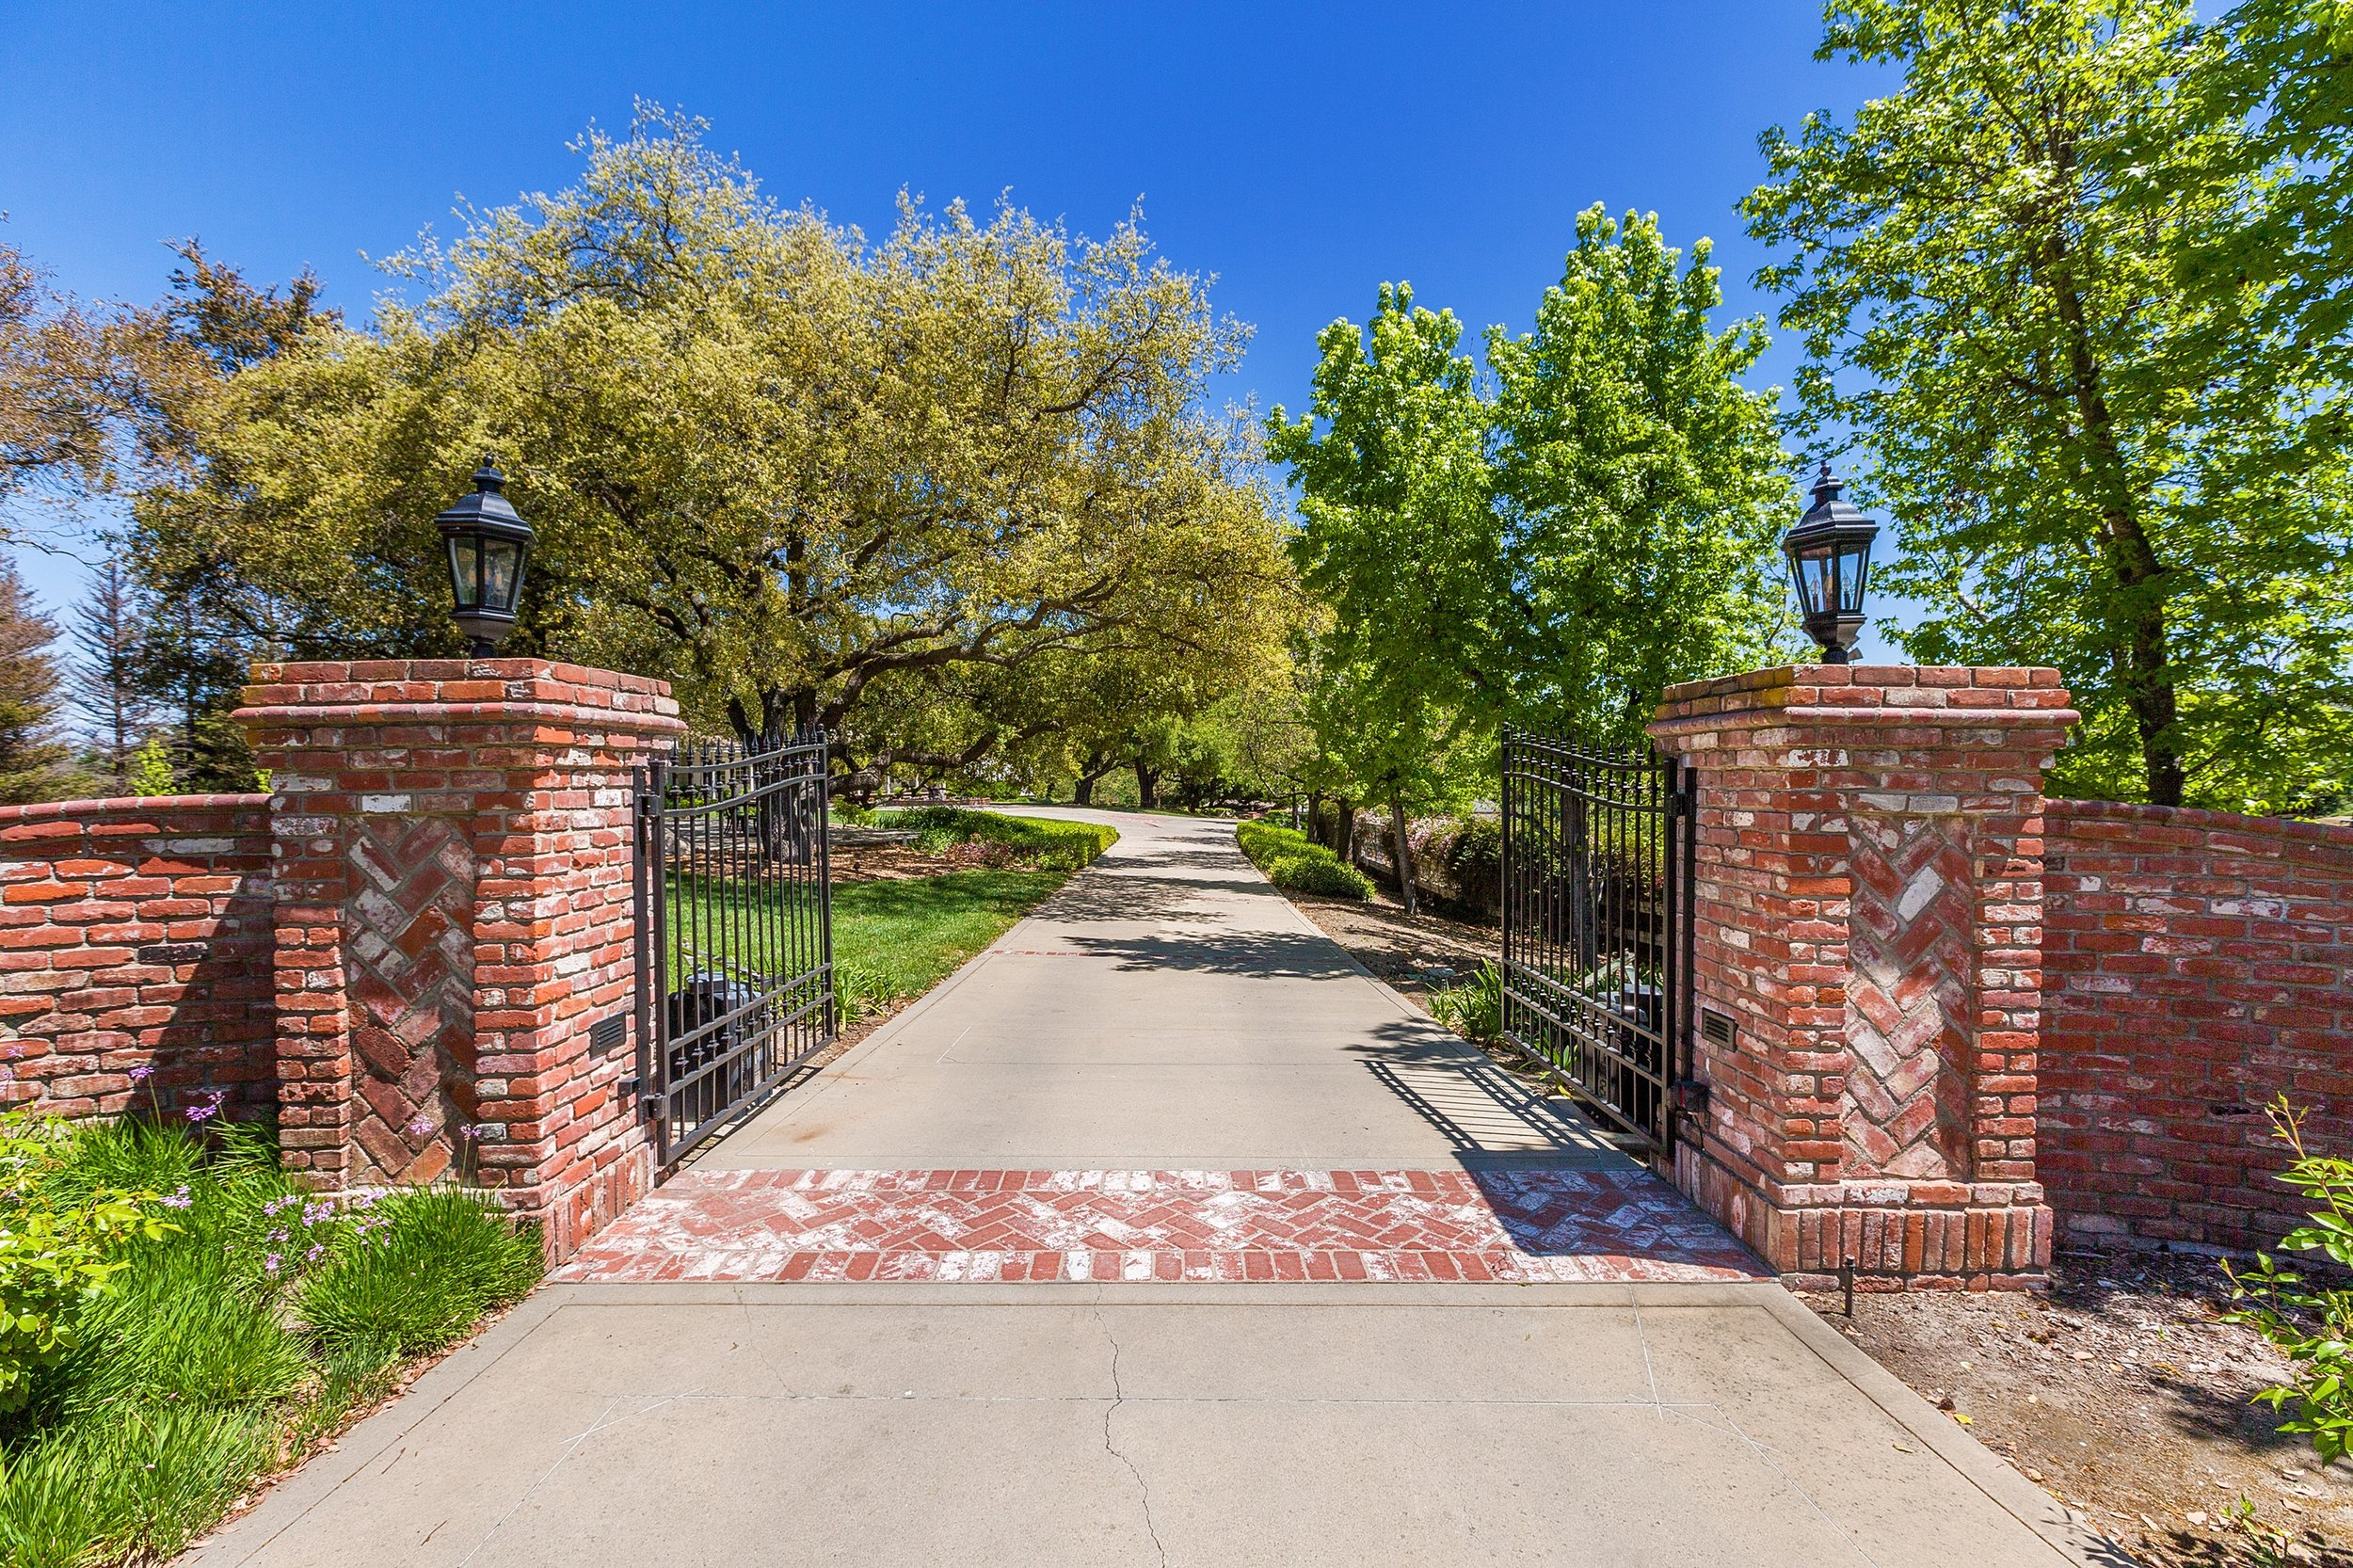 005_Gated Entrance.jpg